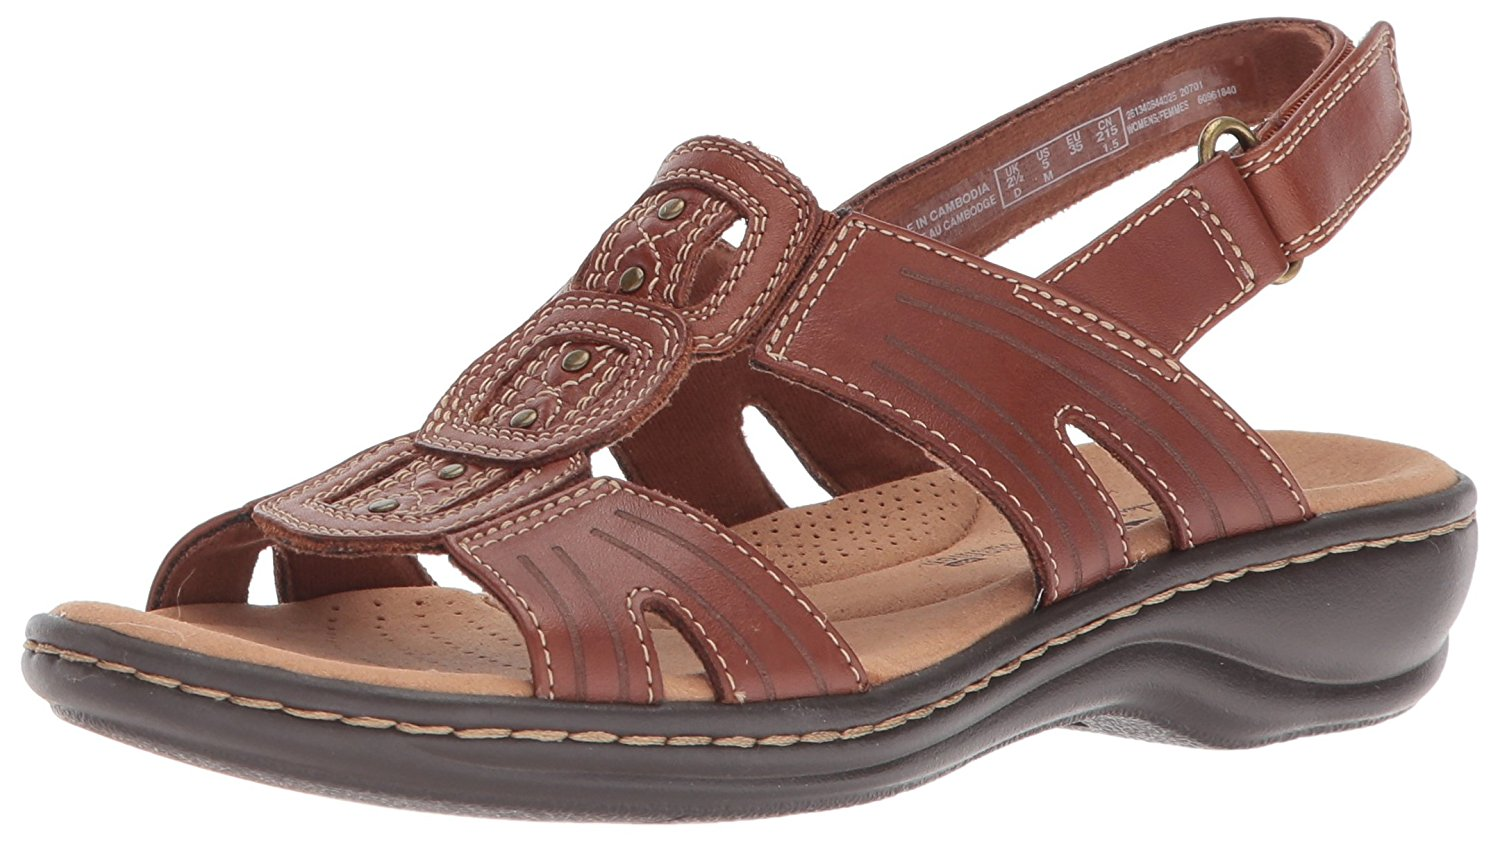 74042fb08797 CLARKS Womens leisa vine Leather Open Toe Casual Ankle Strap Sandals ...